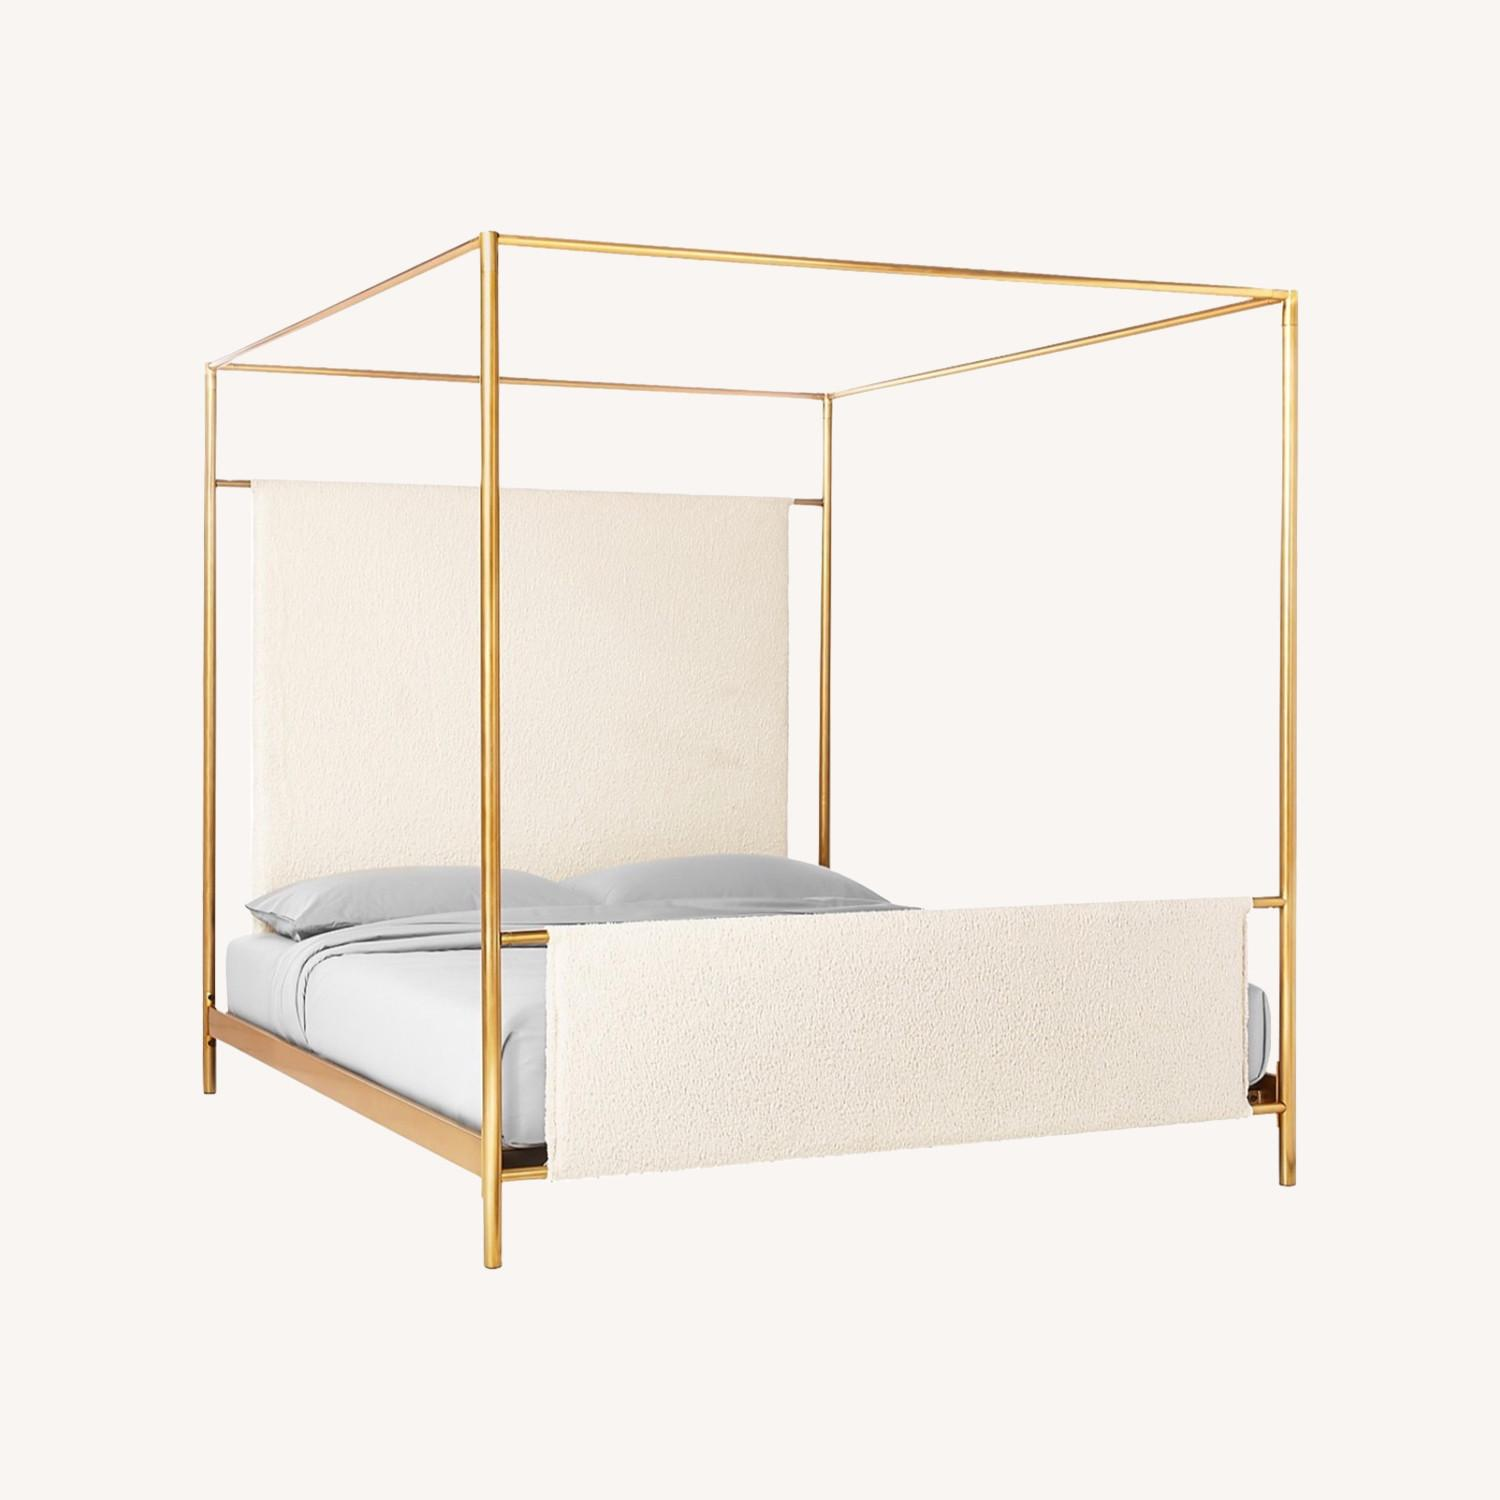 CB2 Odessa Shearling Canopy King Bed - image-0